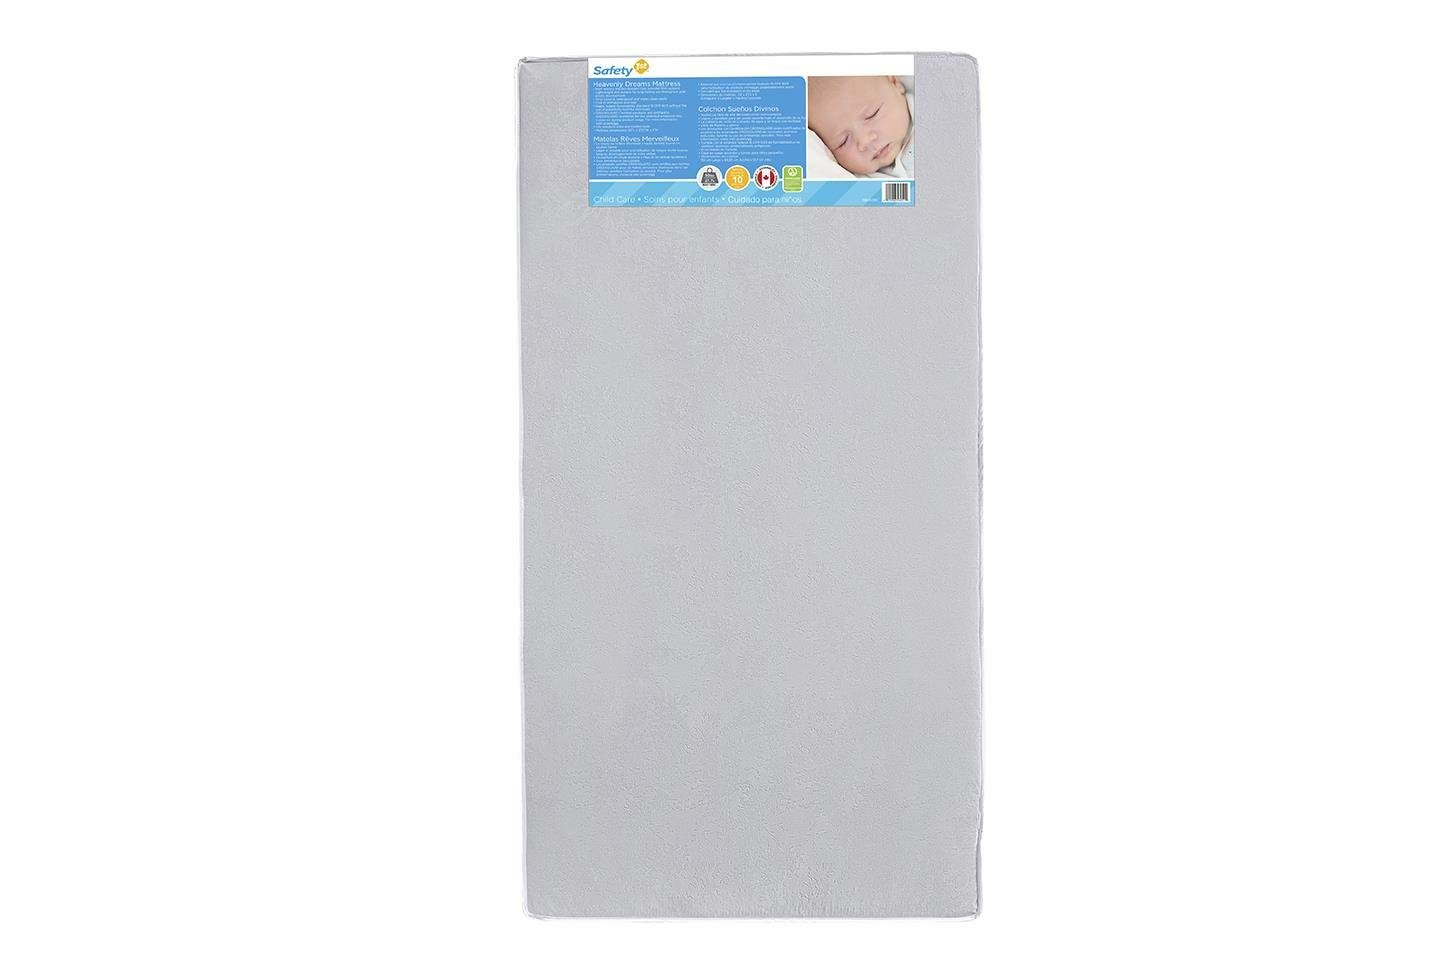 Safety 1st Heavenly Dreams Hypoallergenic Crib Mattress